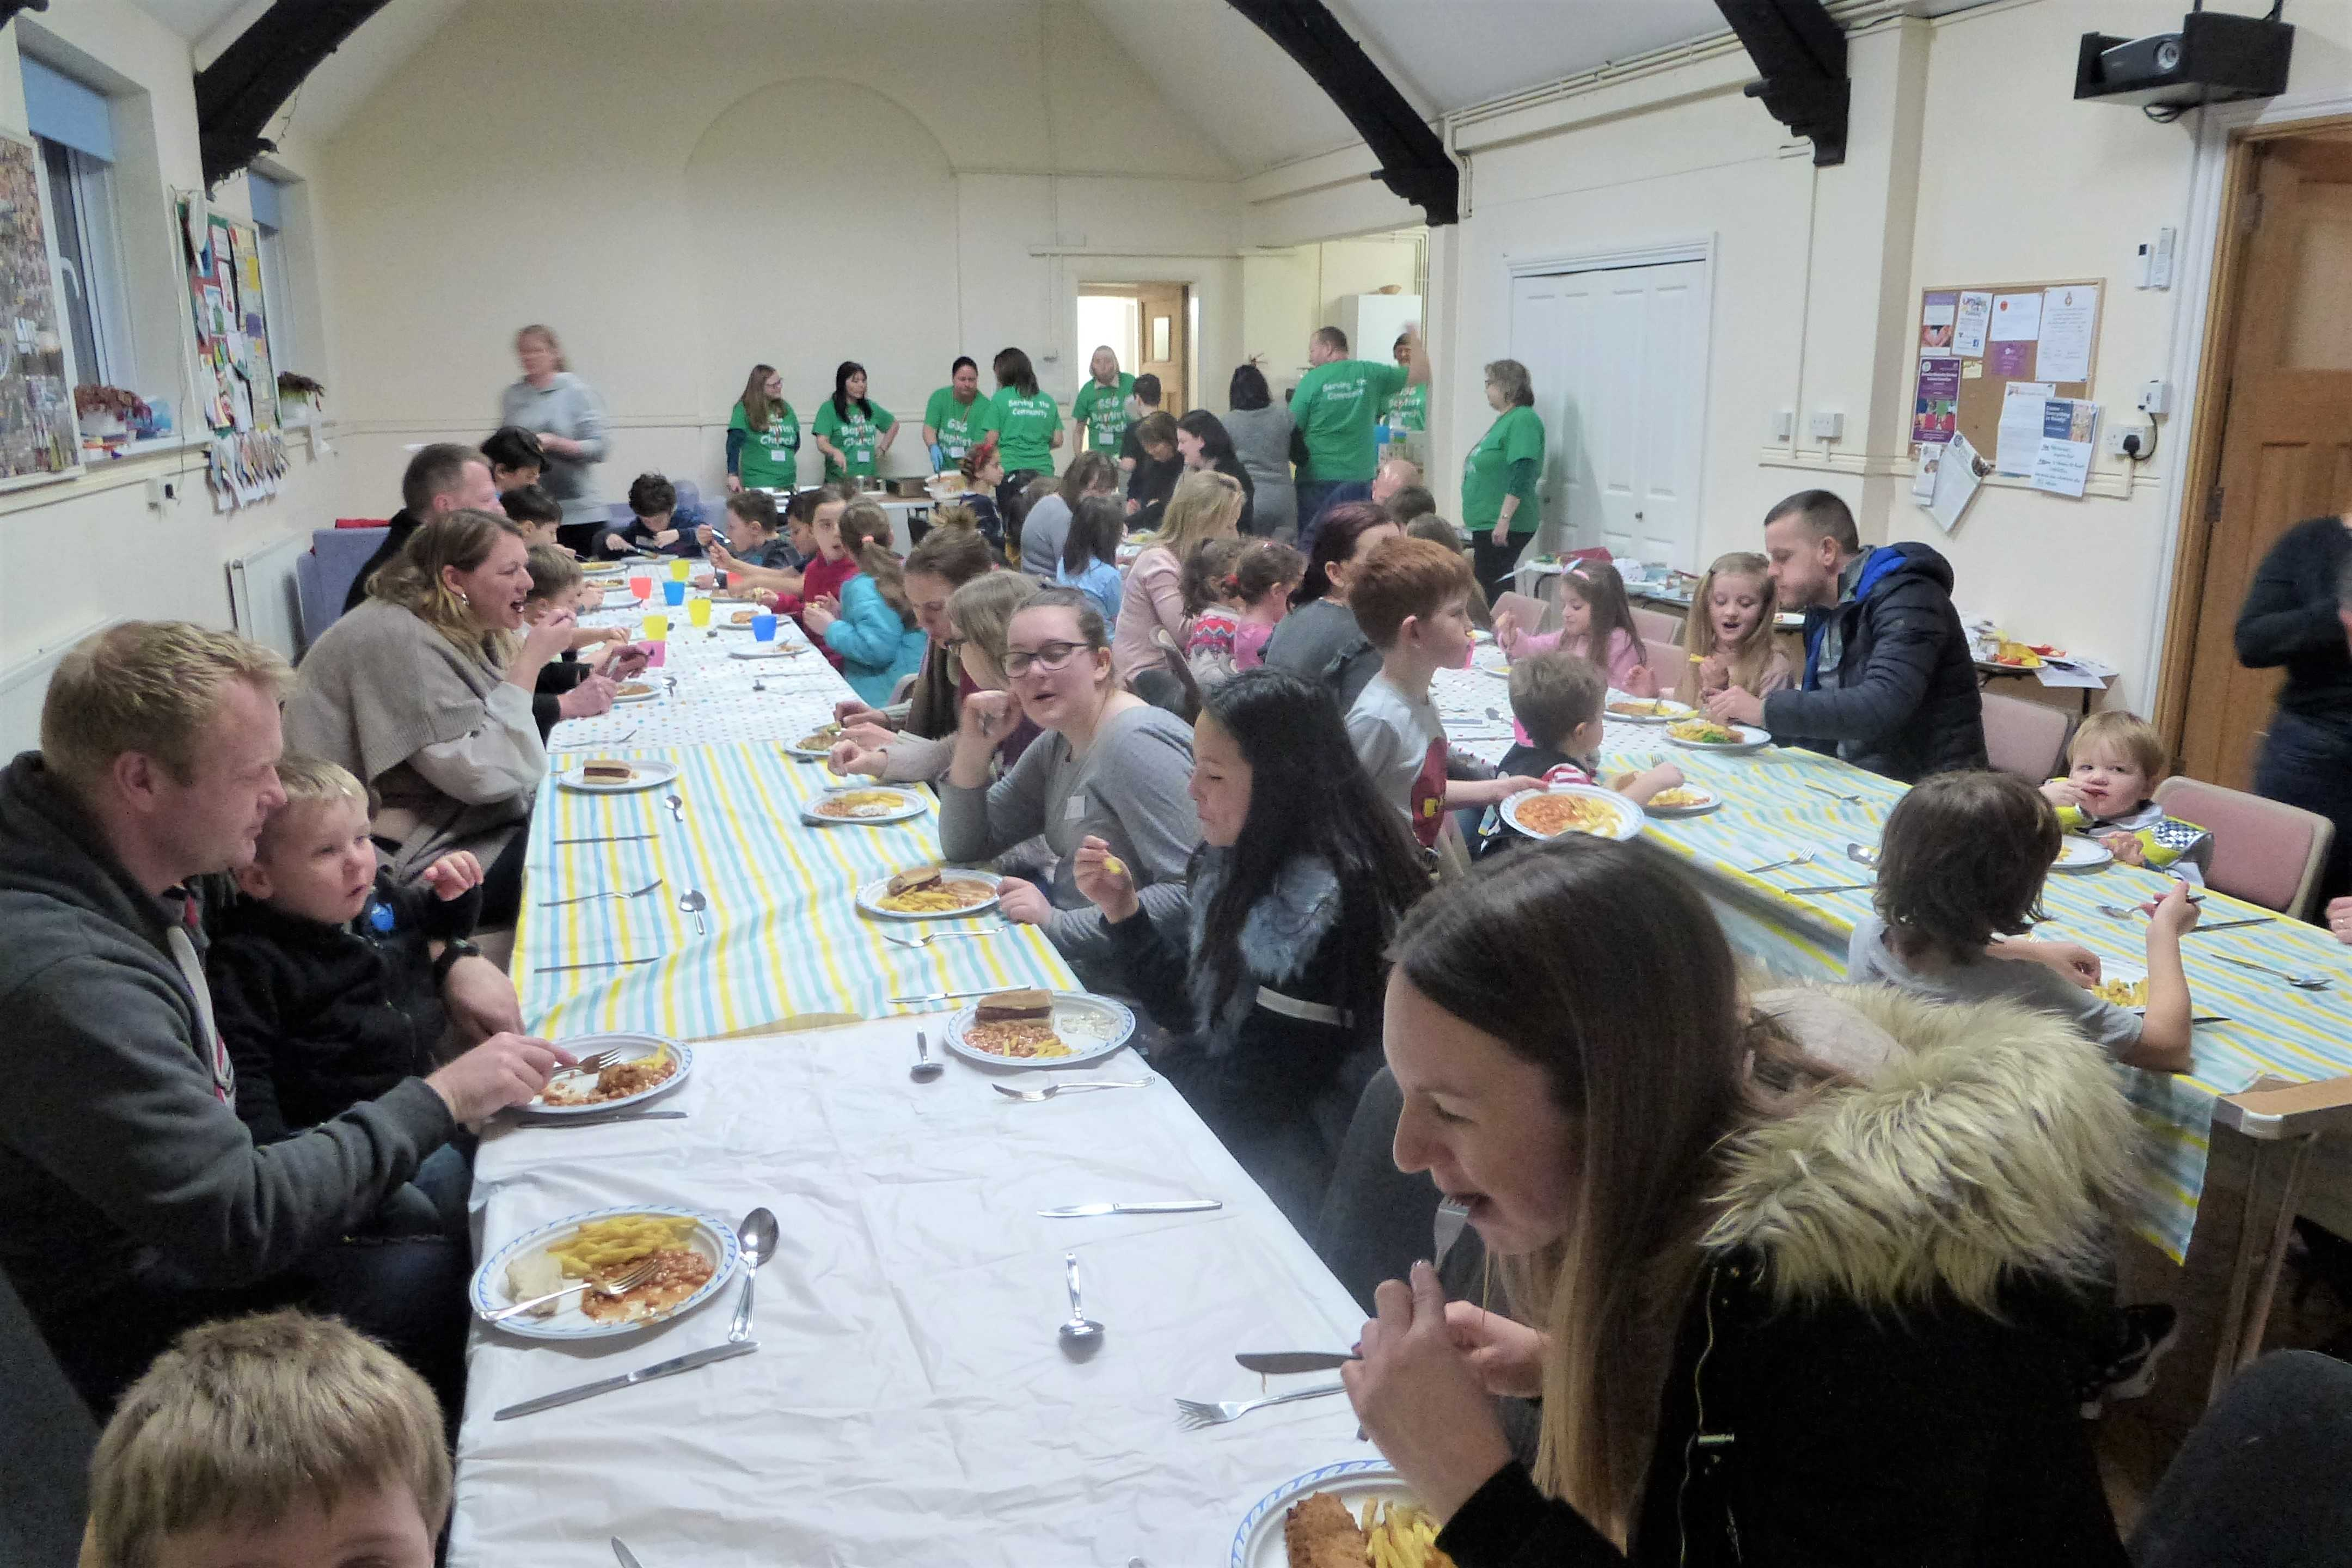 Fellowship with fish and chips at February Messy Church